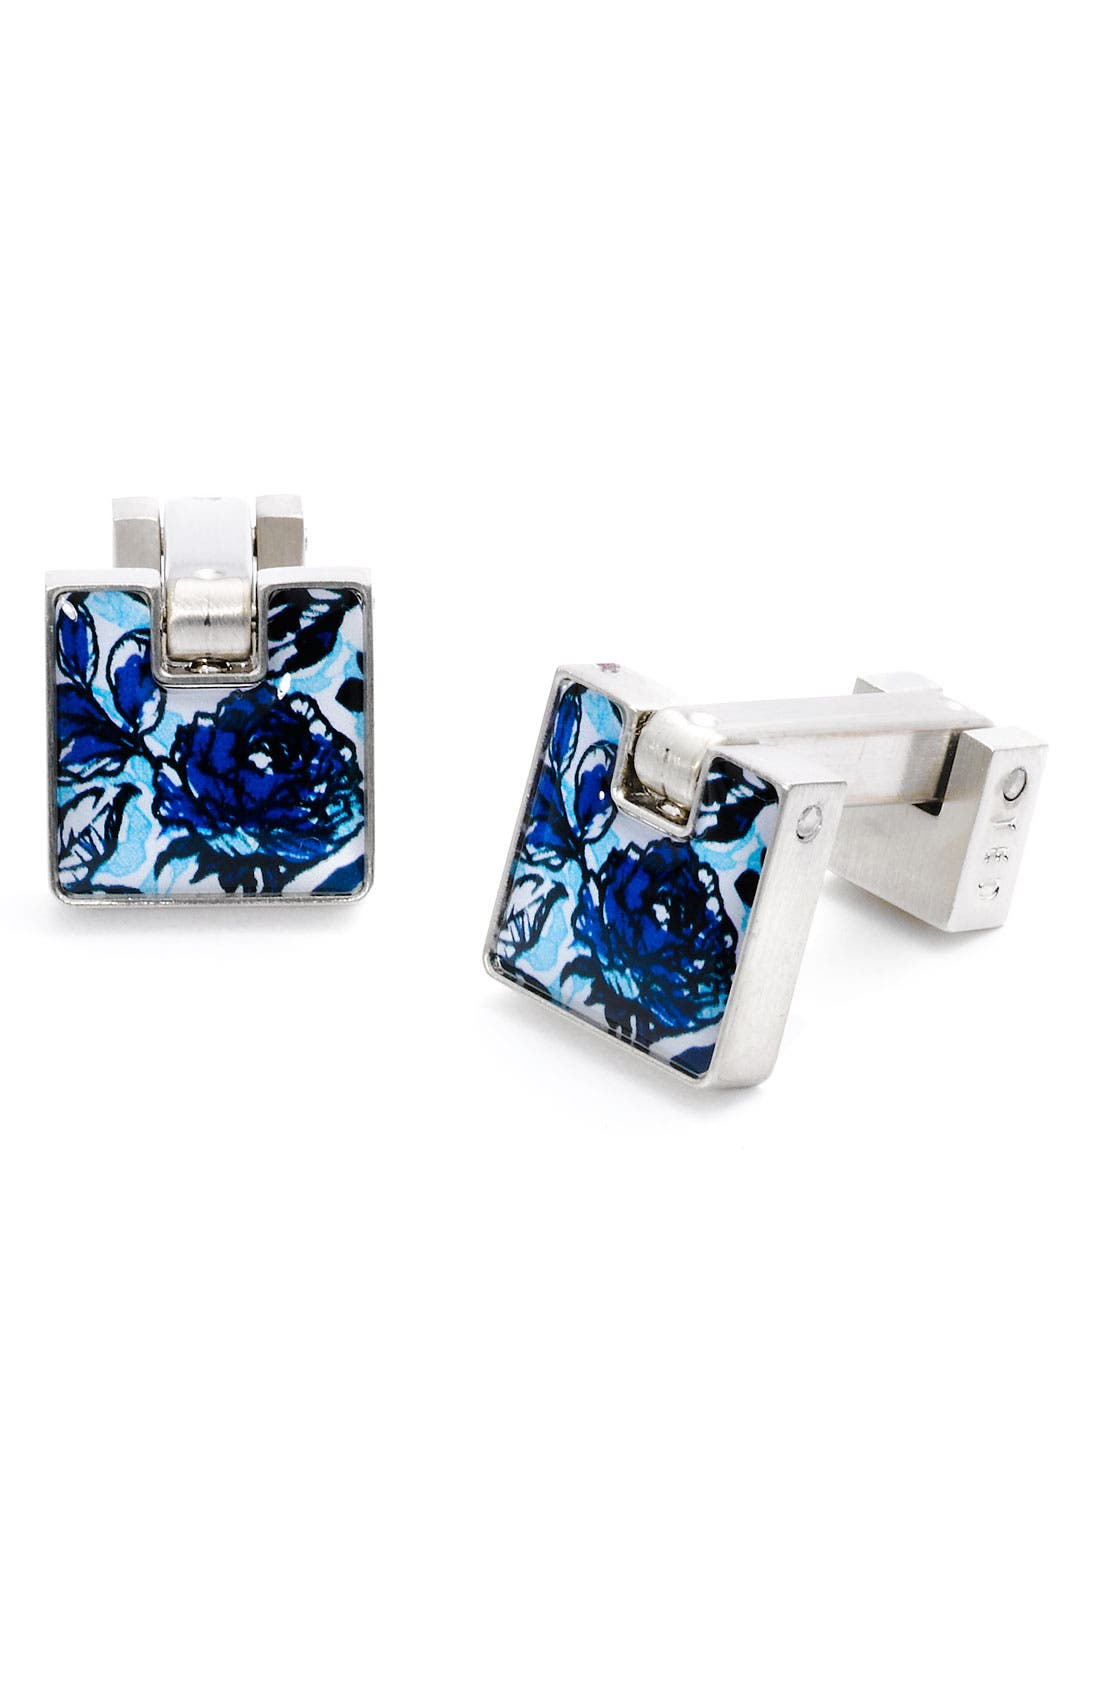 Alternate Image 1 Selected - Ted Baker London Floral Print Cuff Links